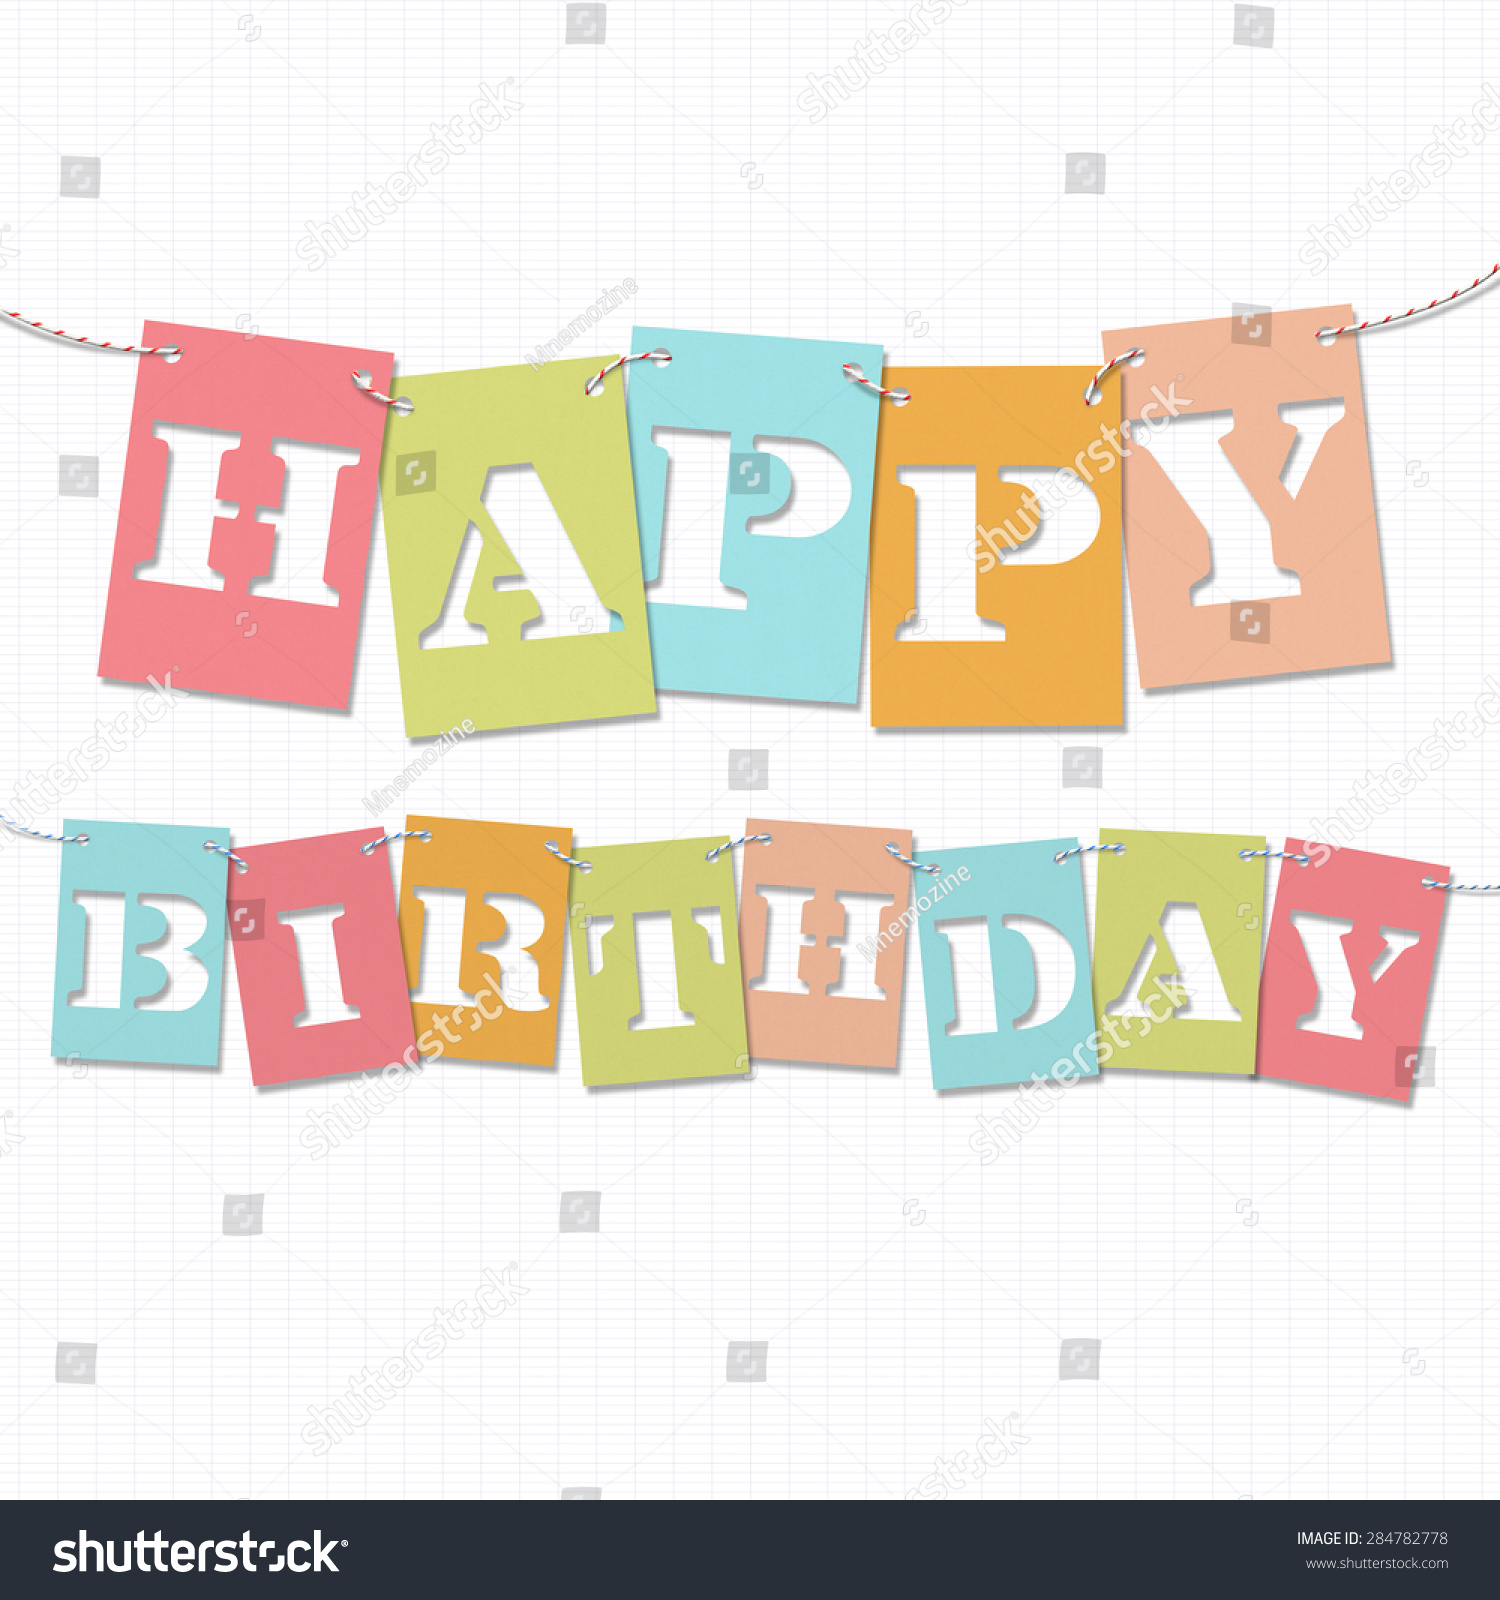 happy birthday background card with cut out letters